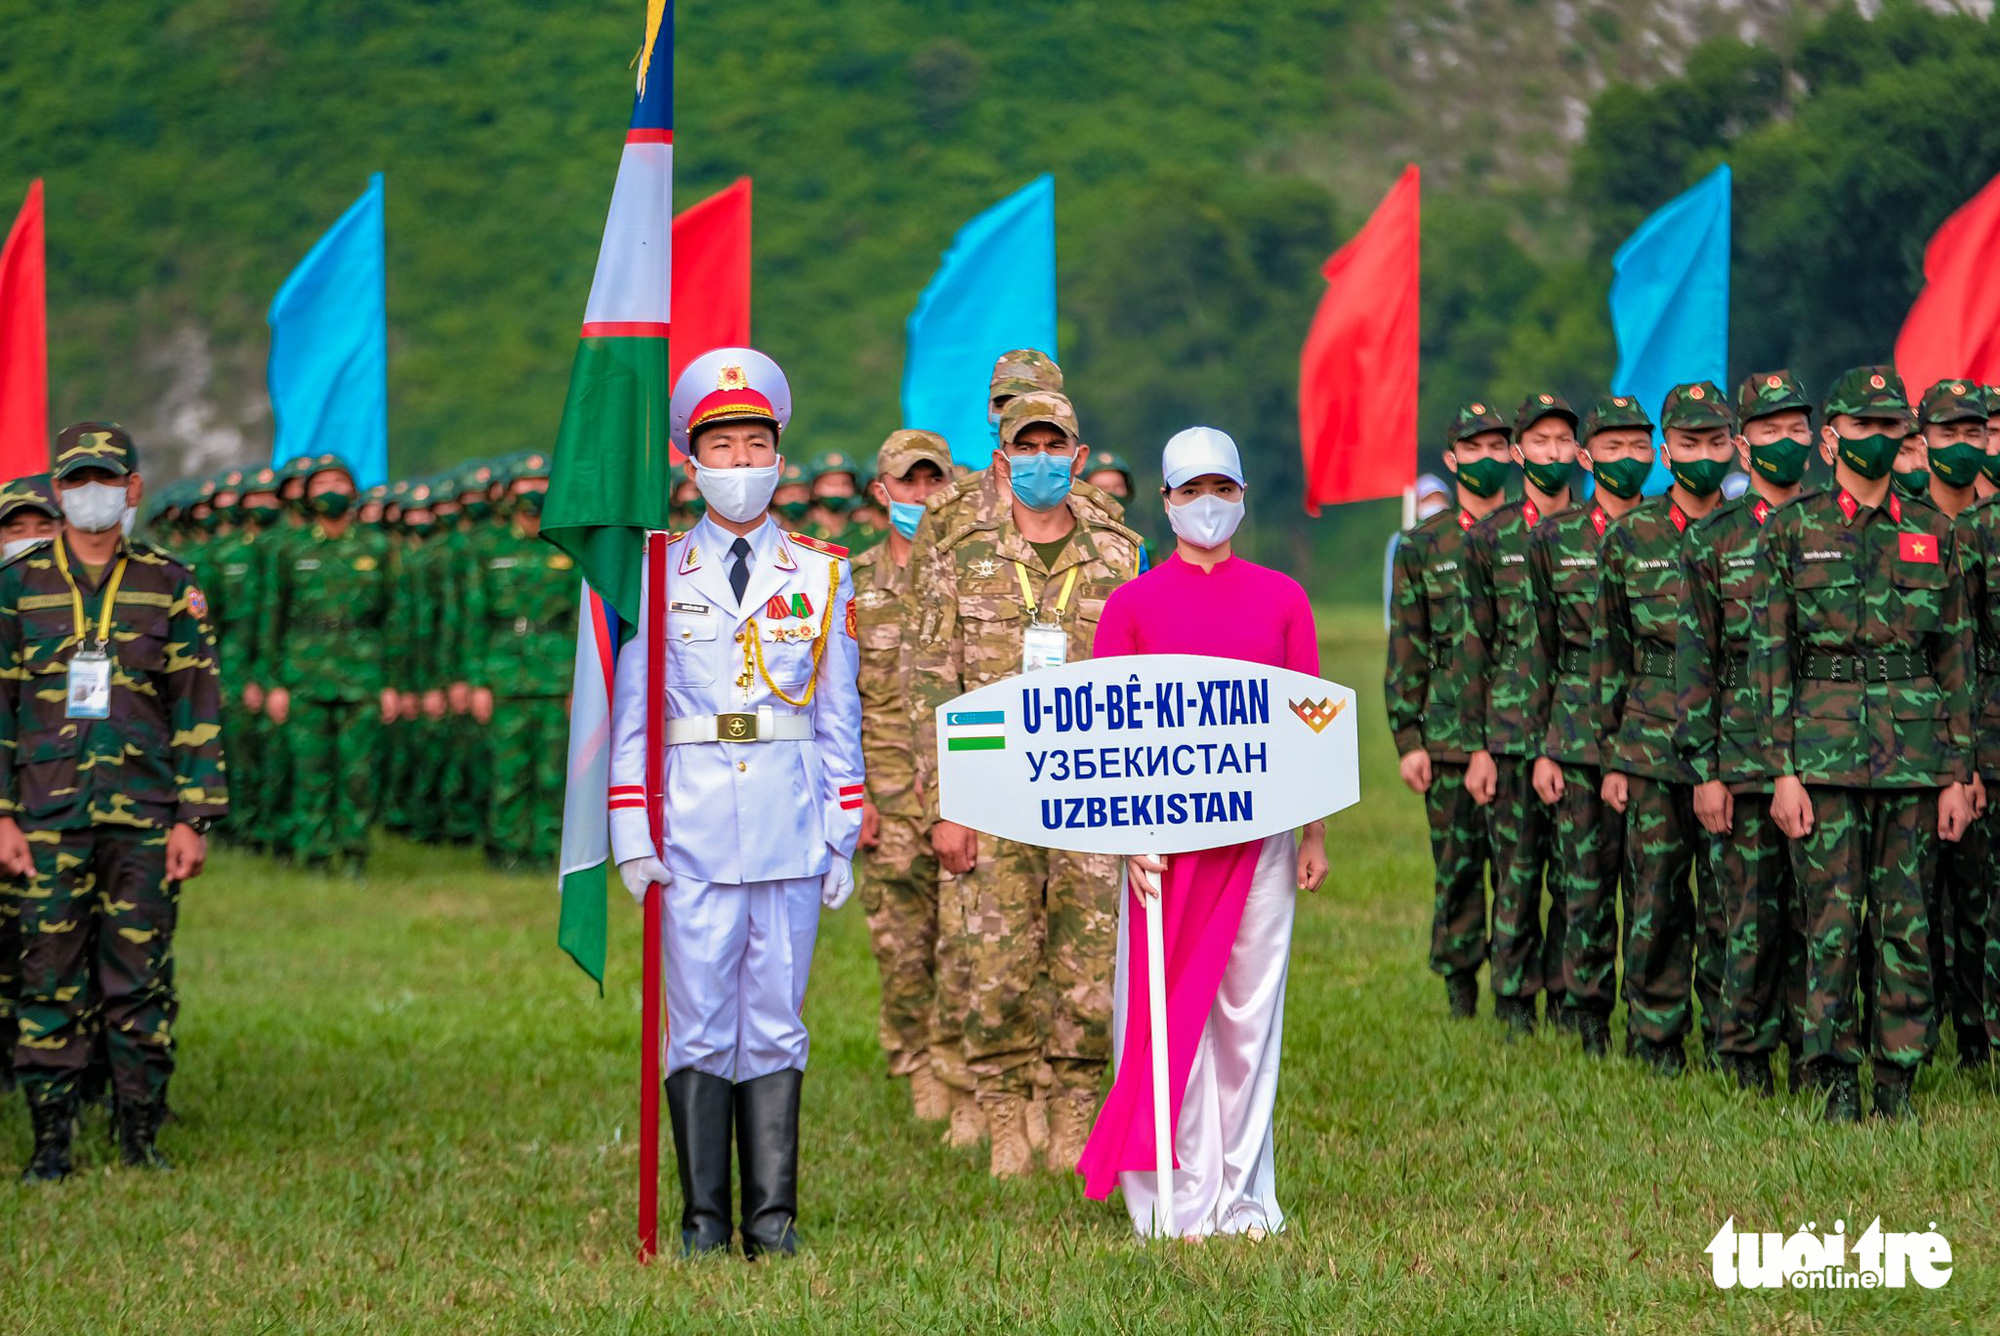 The Uzbek team march at the opening ceremony of the contests at the 2021 International Army Games in Hanoi on August 31, 2021. Photo: Nam Tran / Tuoi Tre